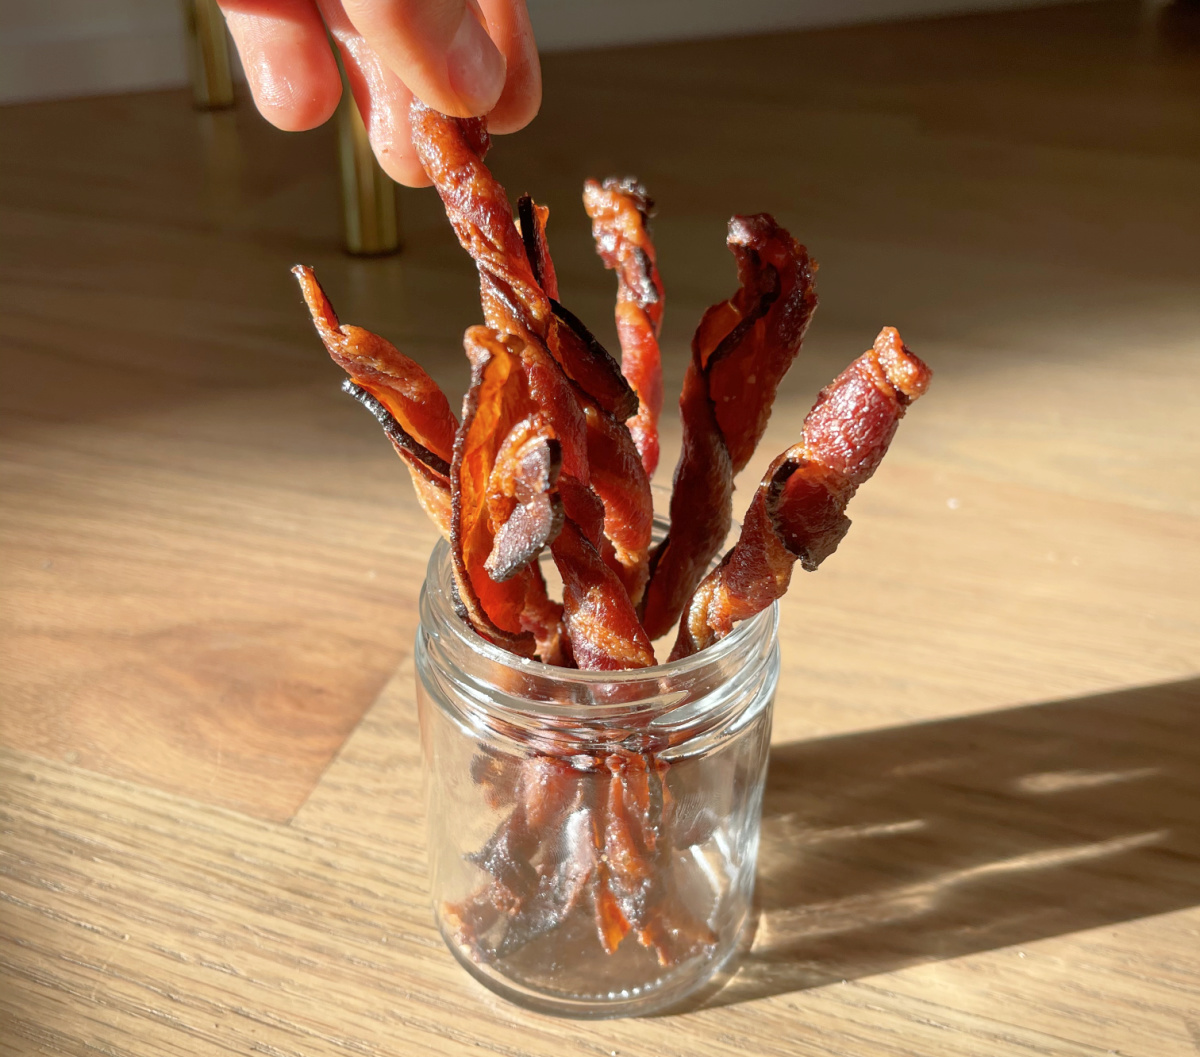 hand grabbing bacon twist out of a jar